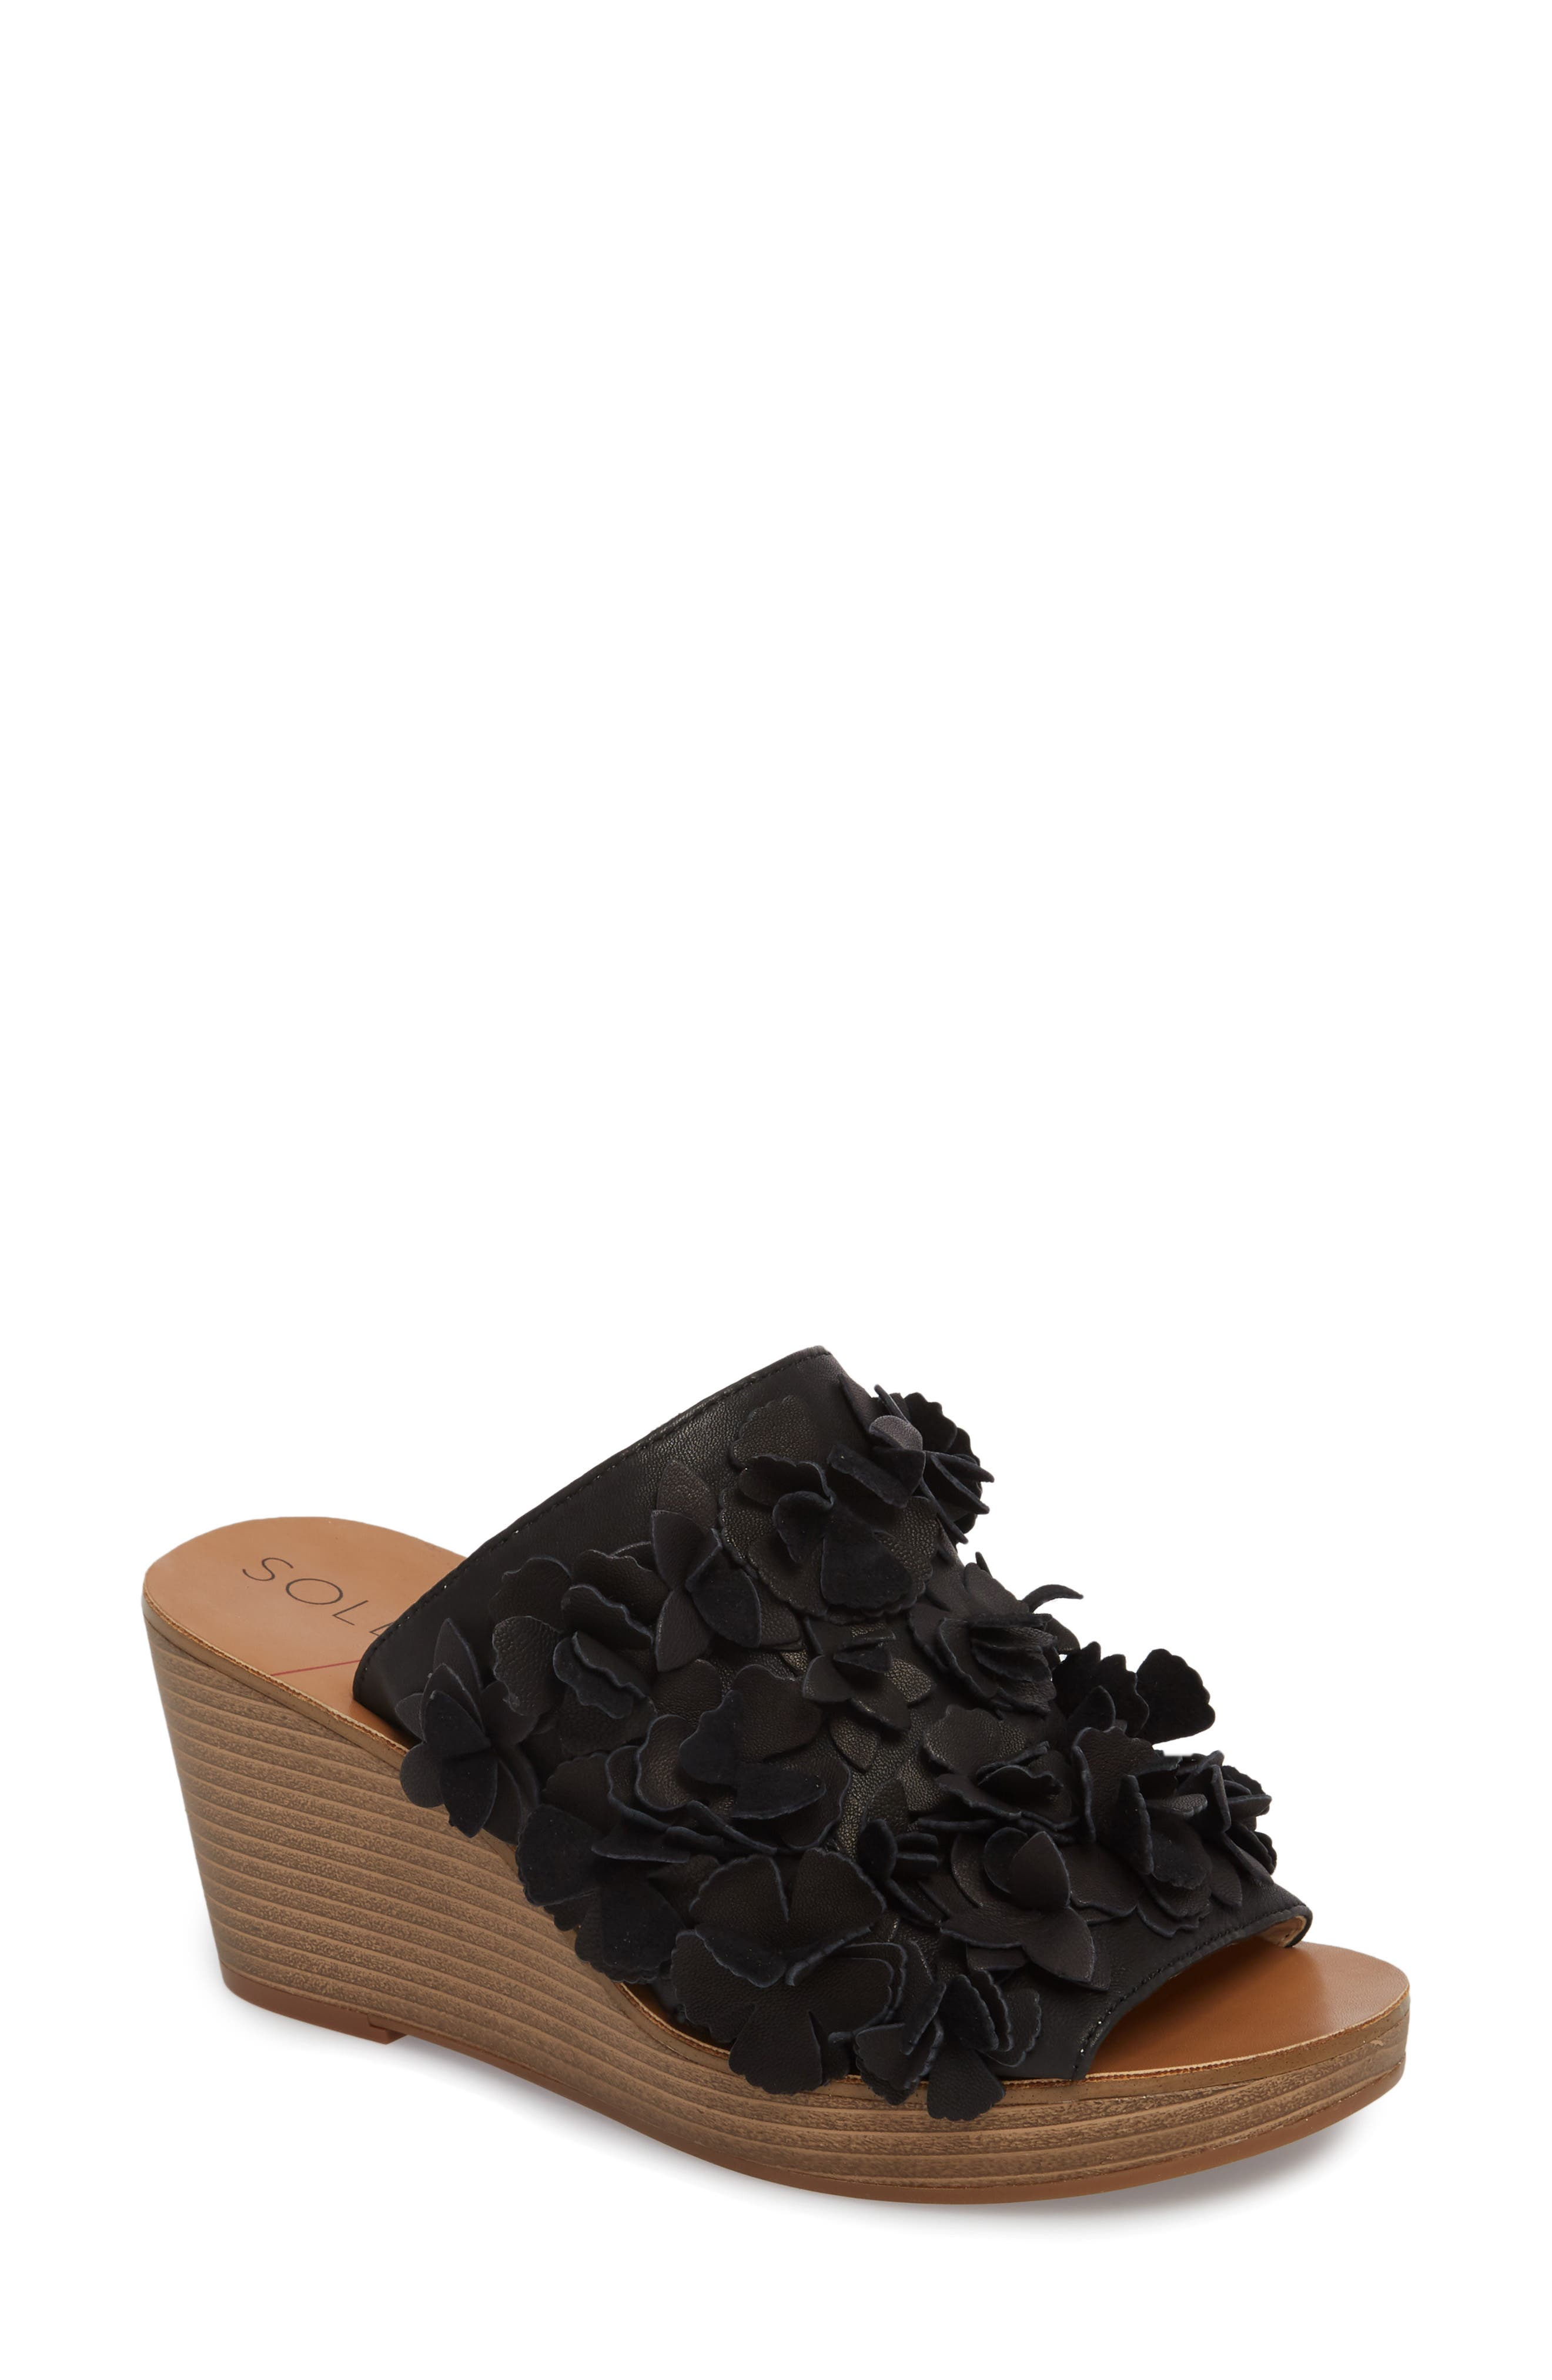 Sole Society Poppie Wedge Sandal- Black